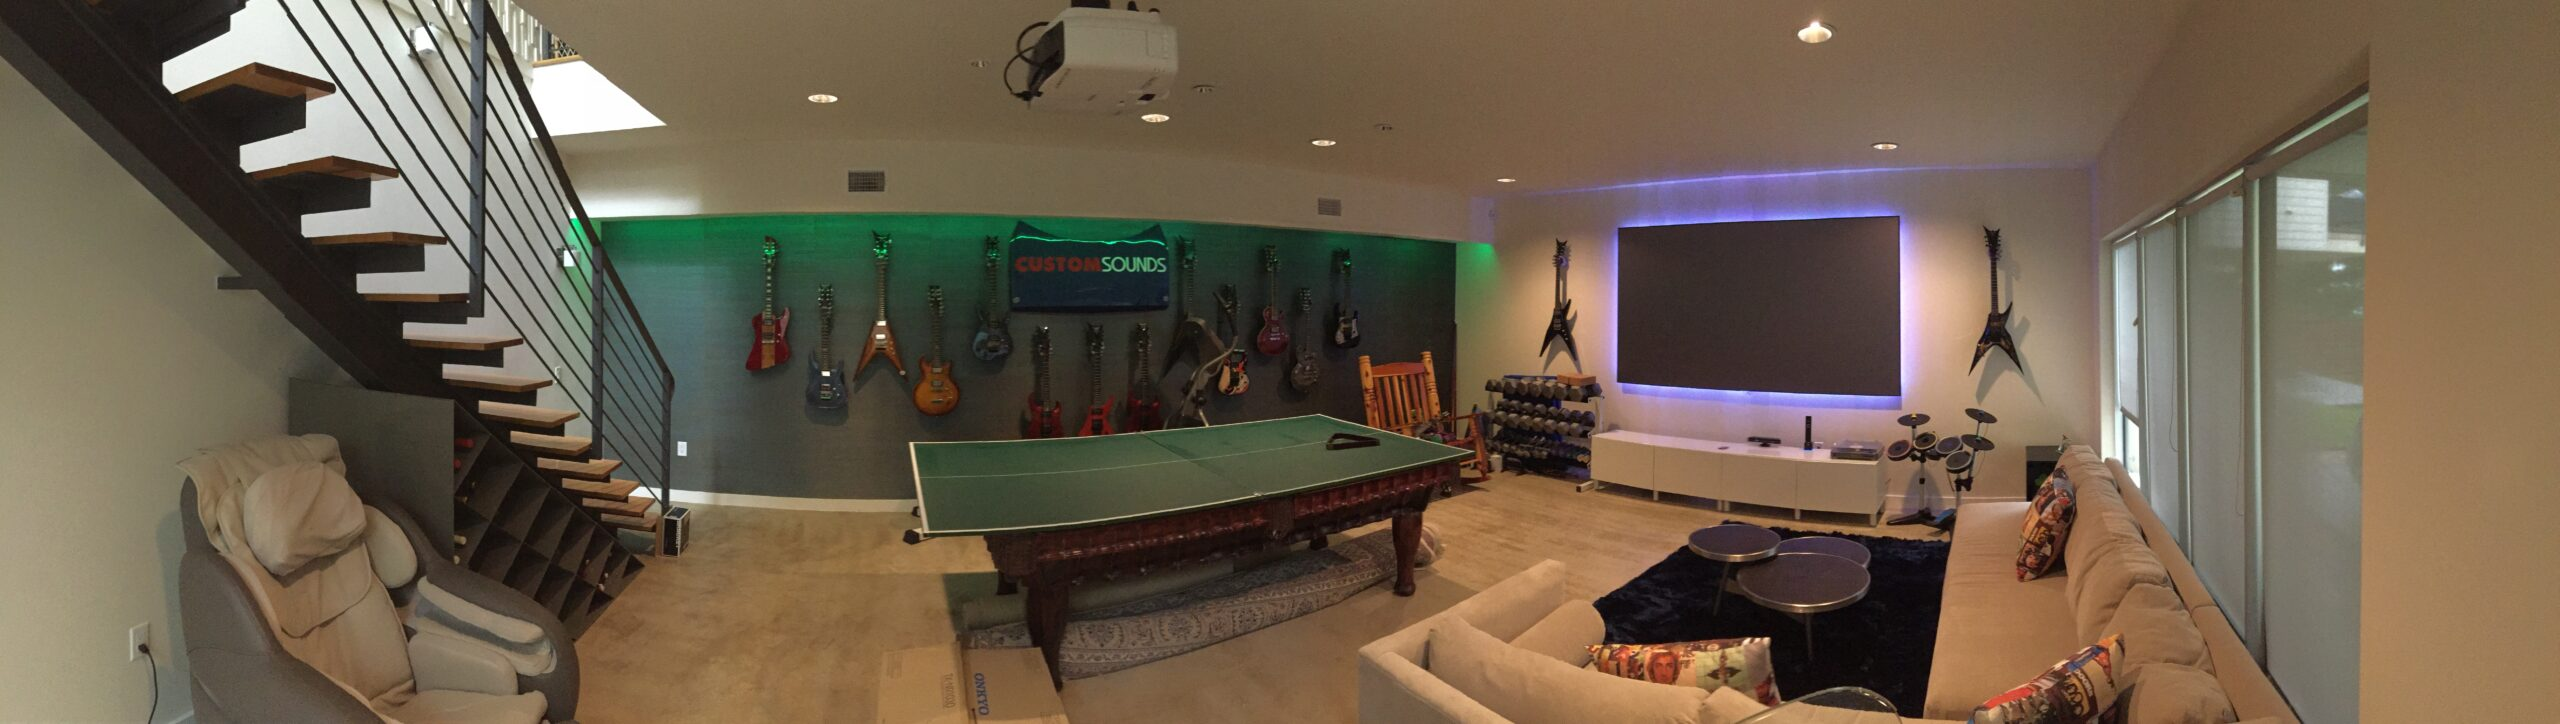 Austin Texas game room integrated with short throw laser projection, full surround sound and custom lighting